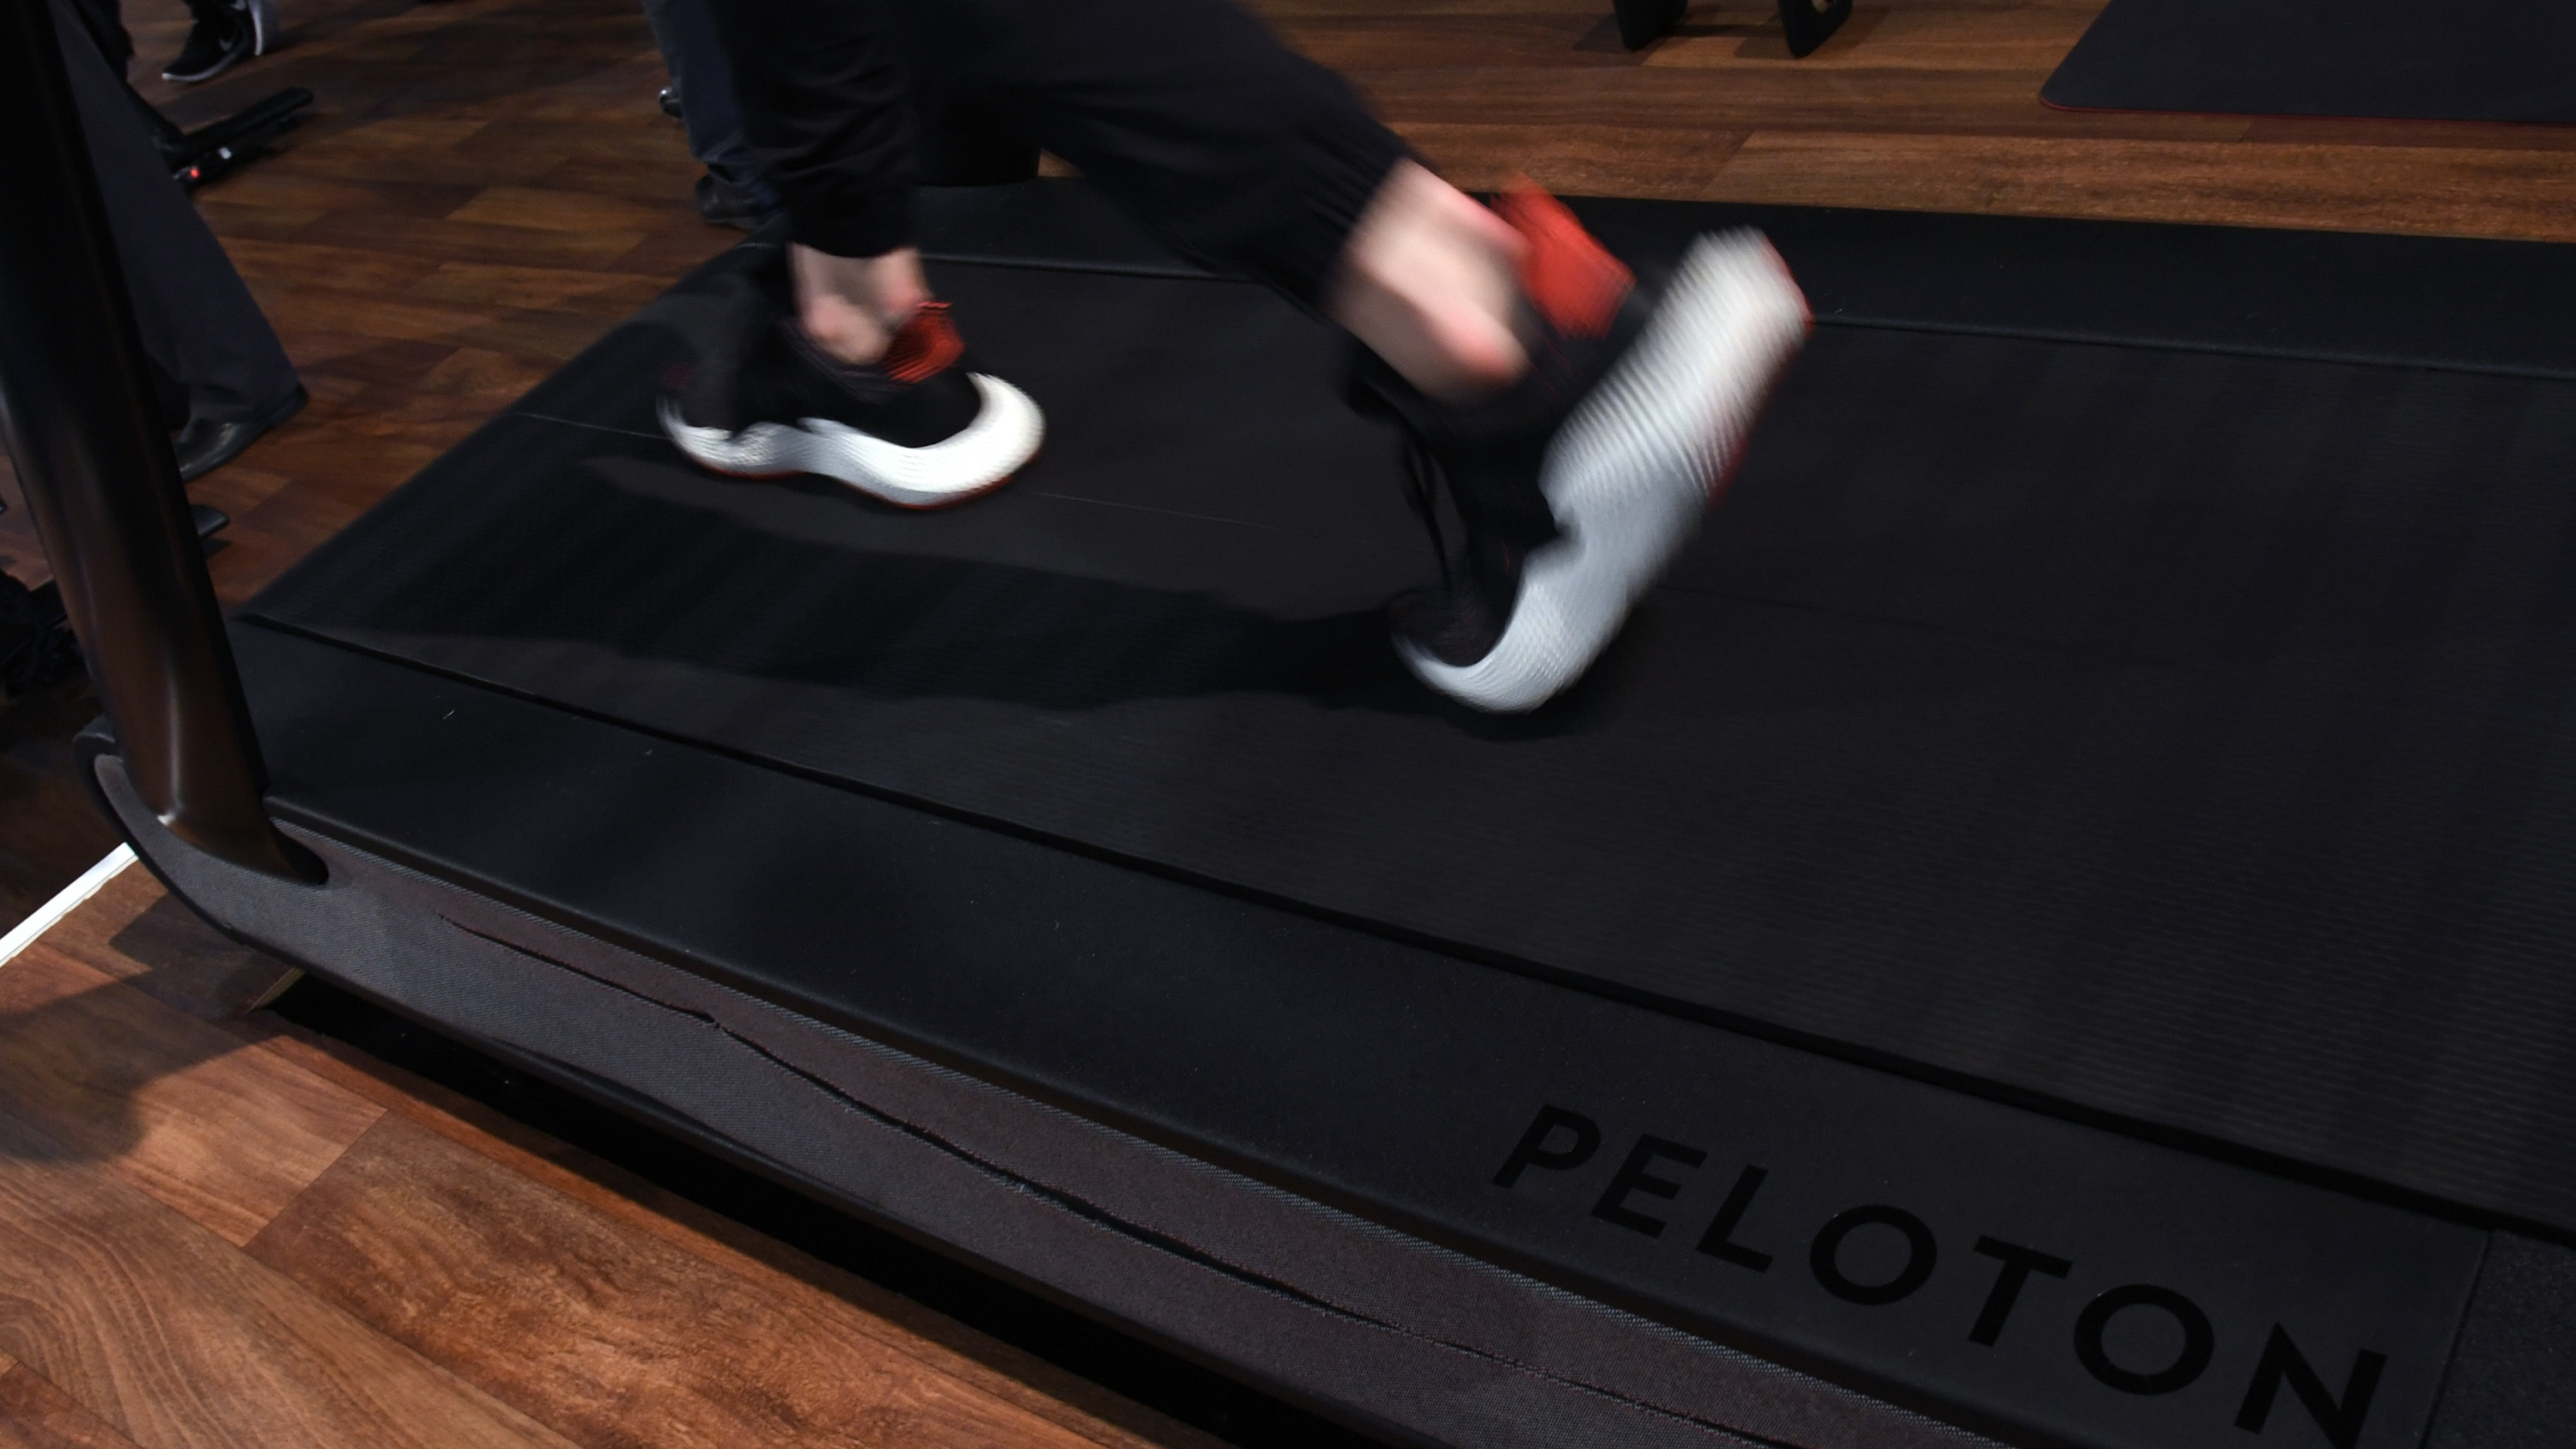 The Consumer Product Safety Commission says it believes the Peloton Tread+ poses serious risks to children and is urging consumers with children to stop using it.